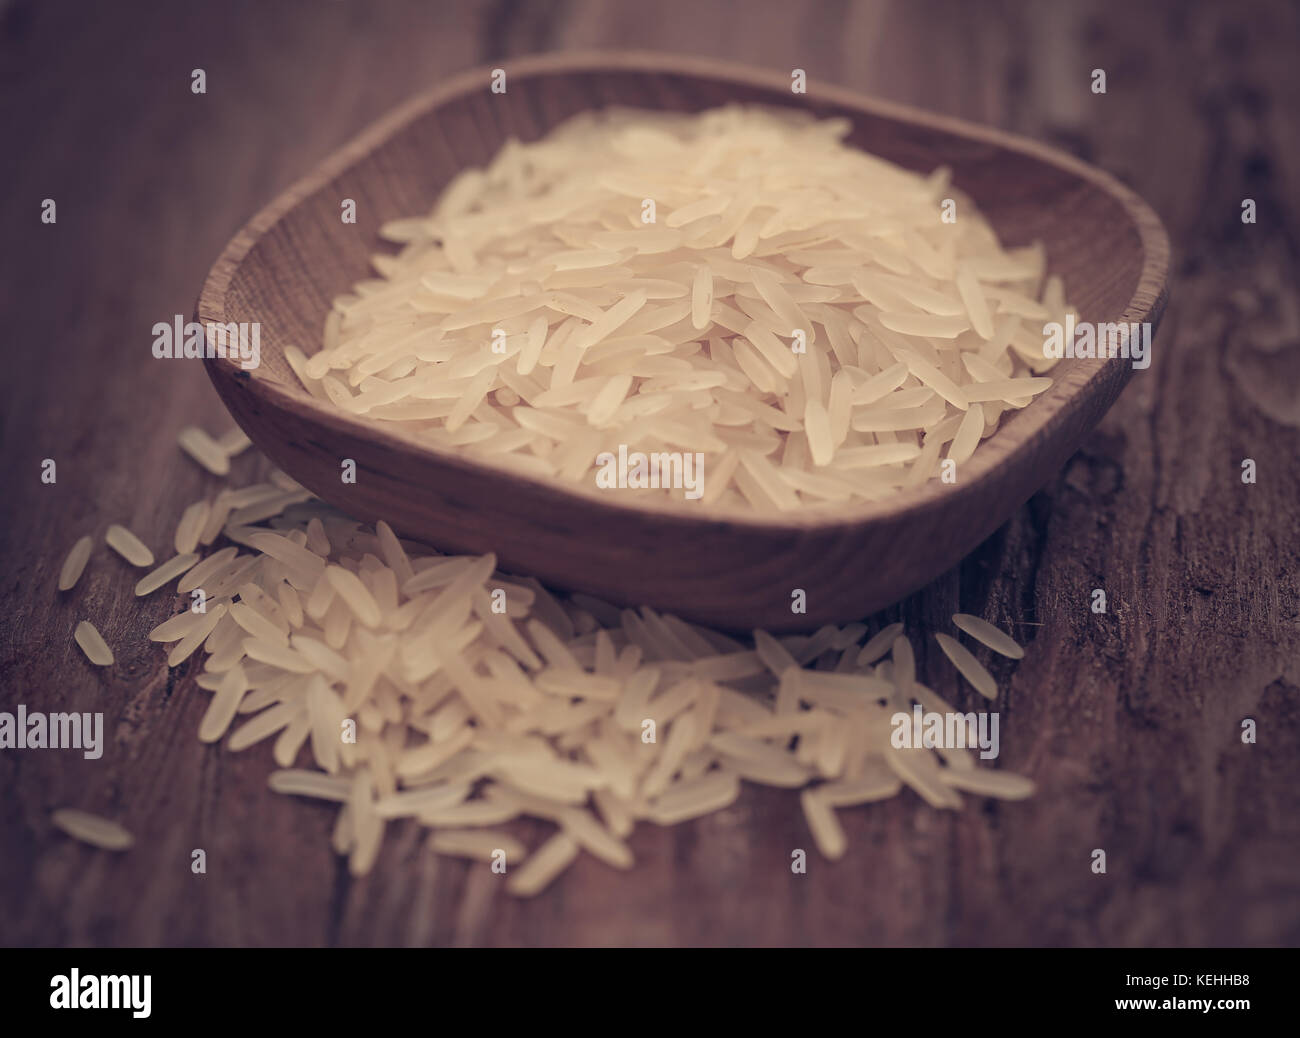 Basmati rice in a bowl on wooden surface - Stock Image